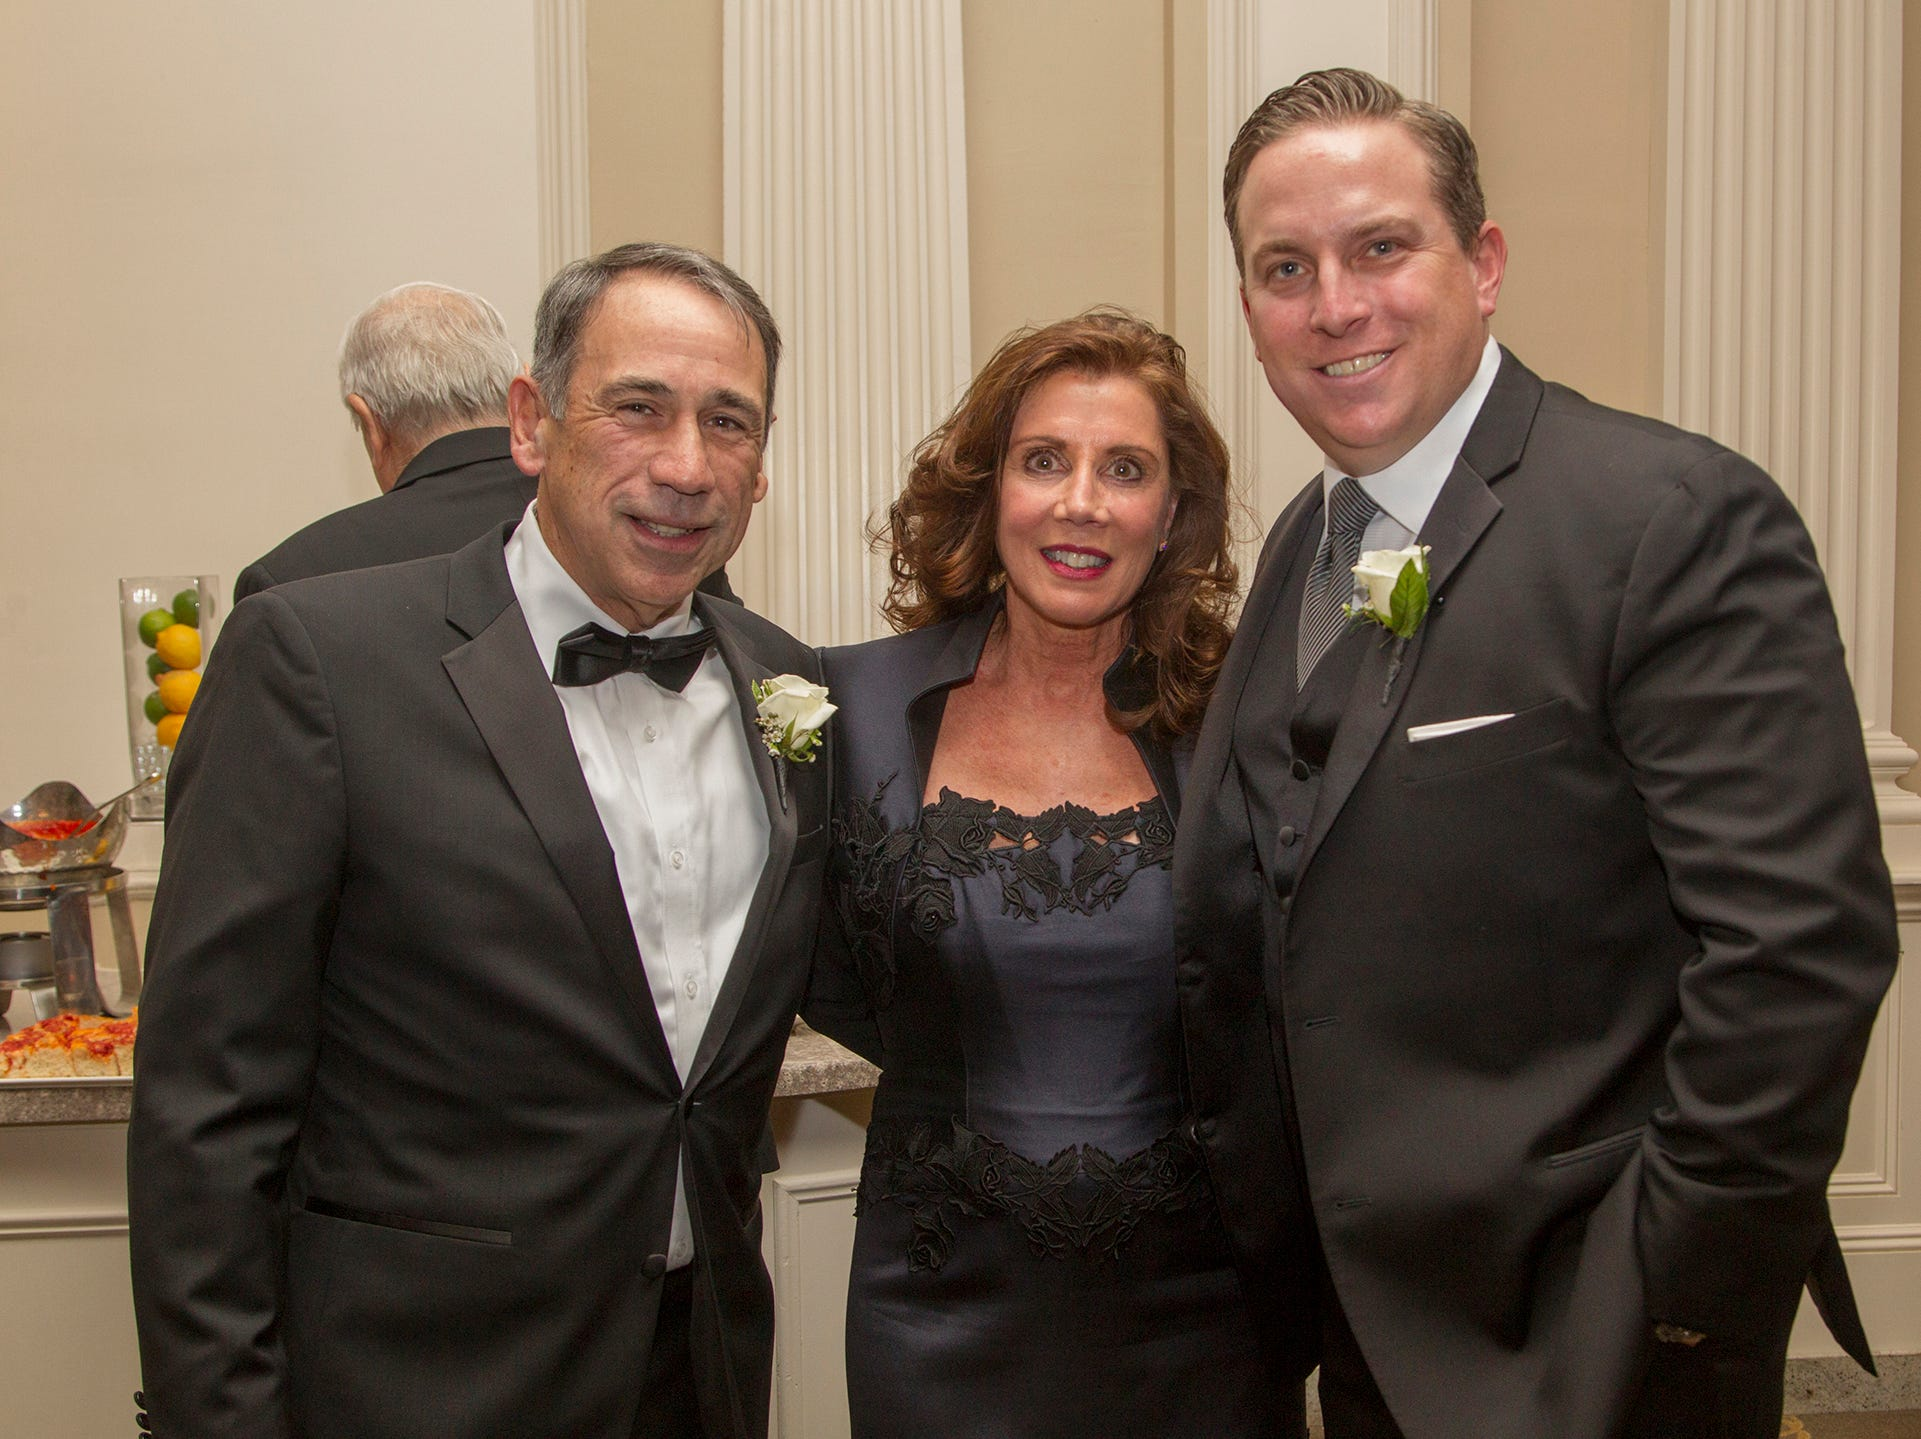 Roy Putrino, Debra Perry, Peter Seminara. Ramapo College held its 37th Annual Distinguished Citizens Dinner at Rockleigh Country Club. 03/02/2019